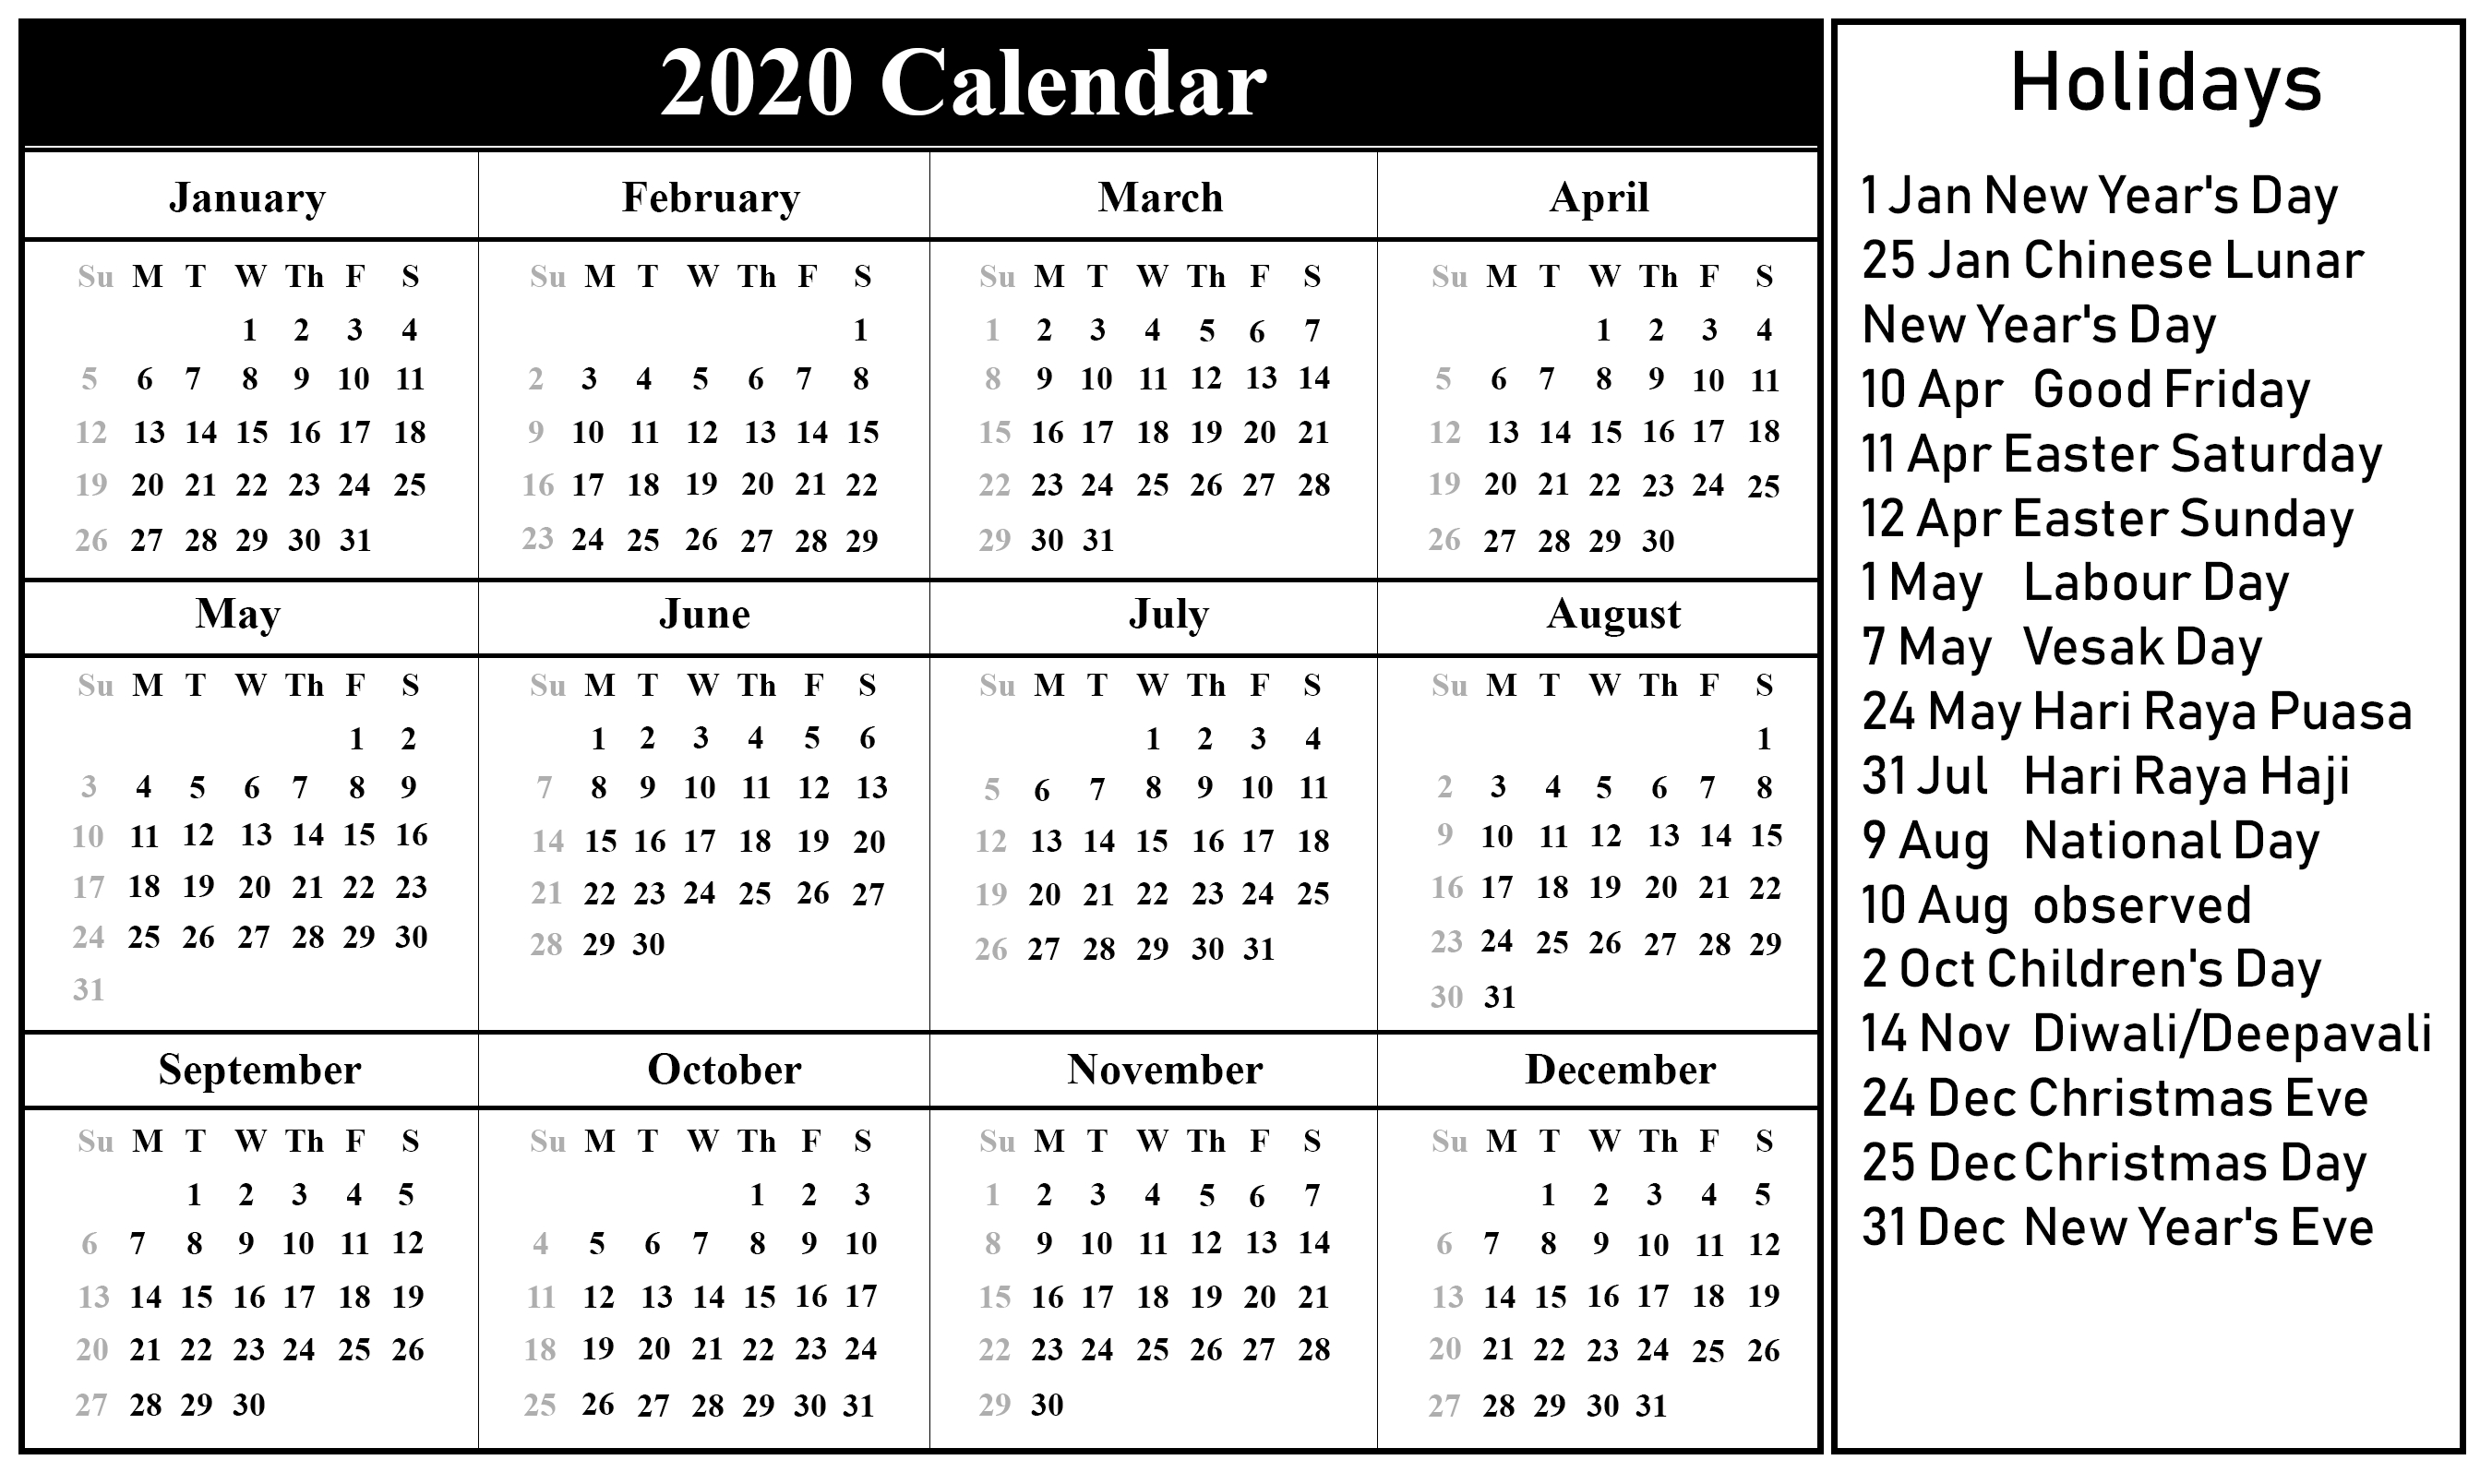 Printable 2020 Calendar With Holidays | Monthly Calendar regarding 2020 Free Printable Monthly Calendars You Can Edit With Holidays